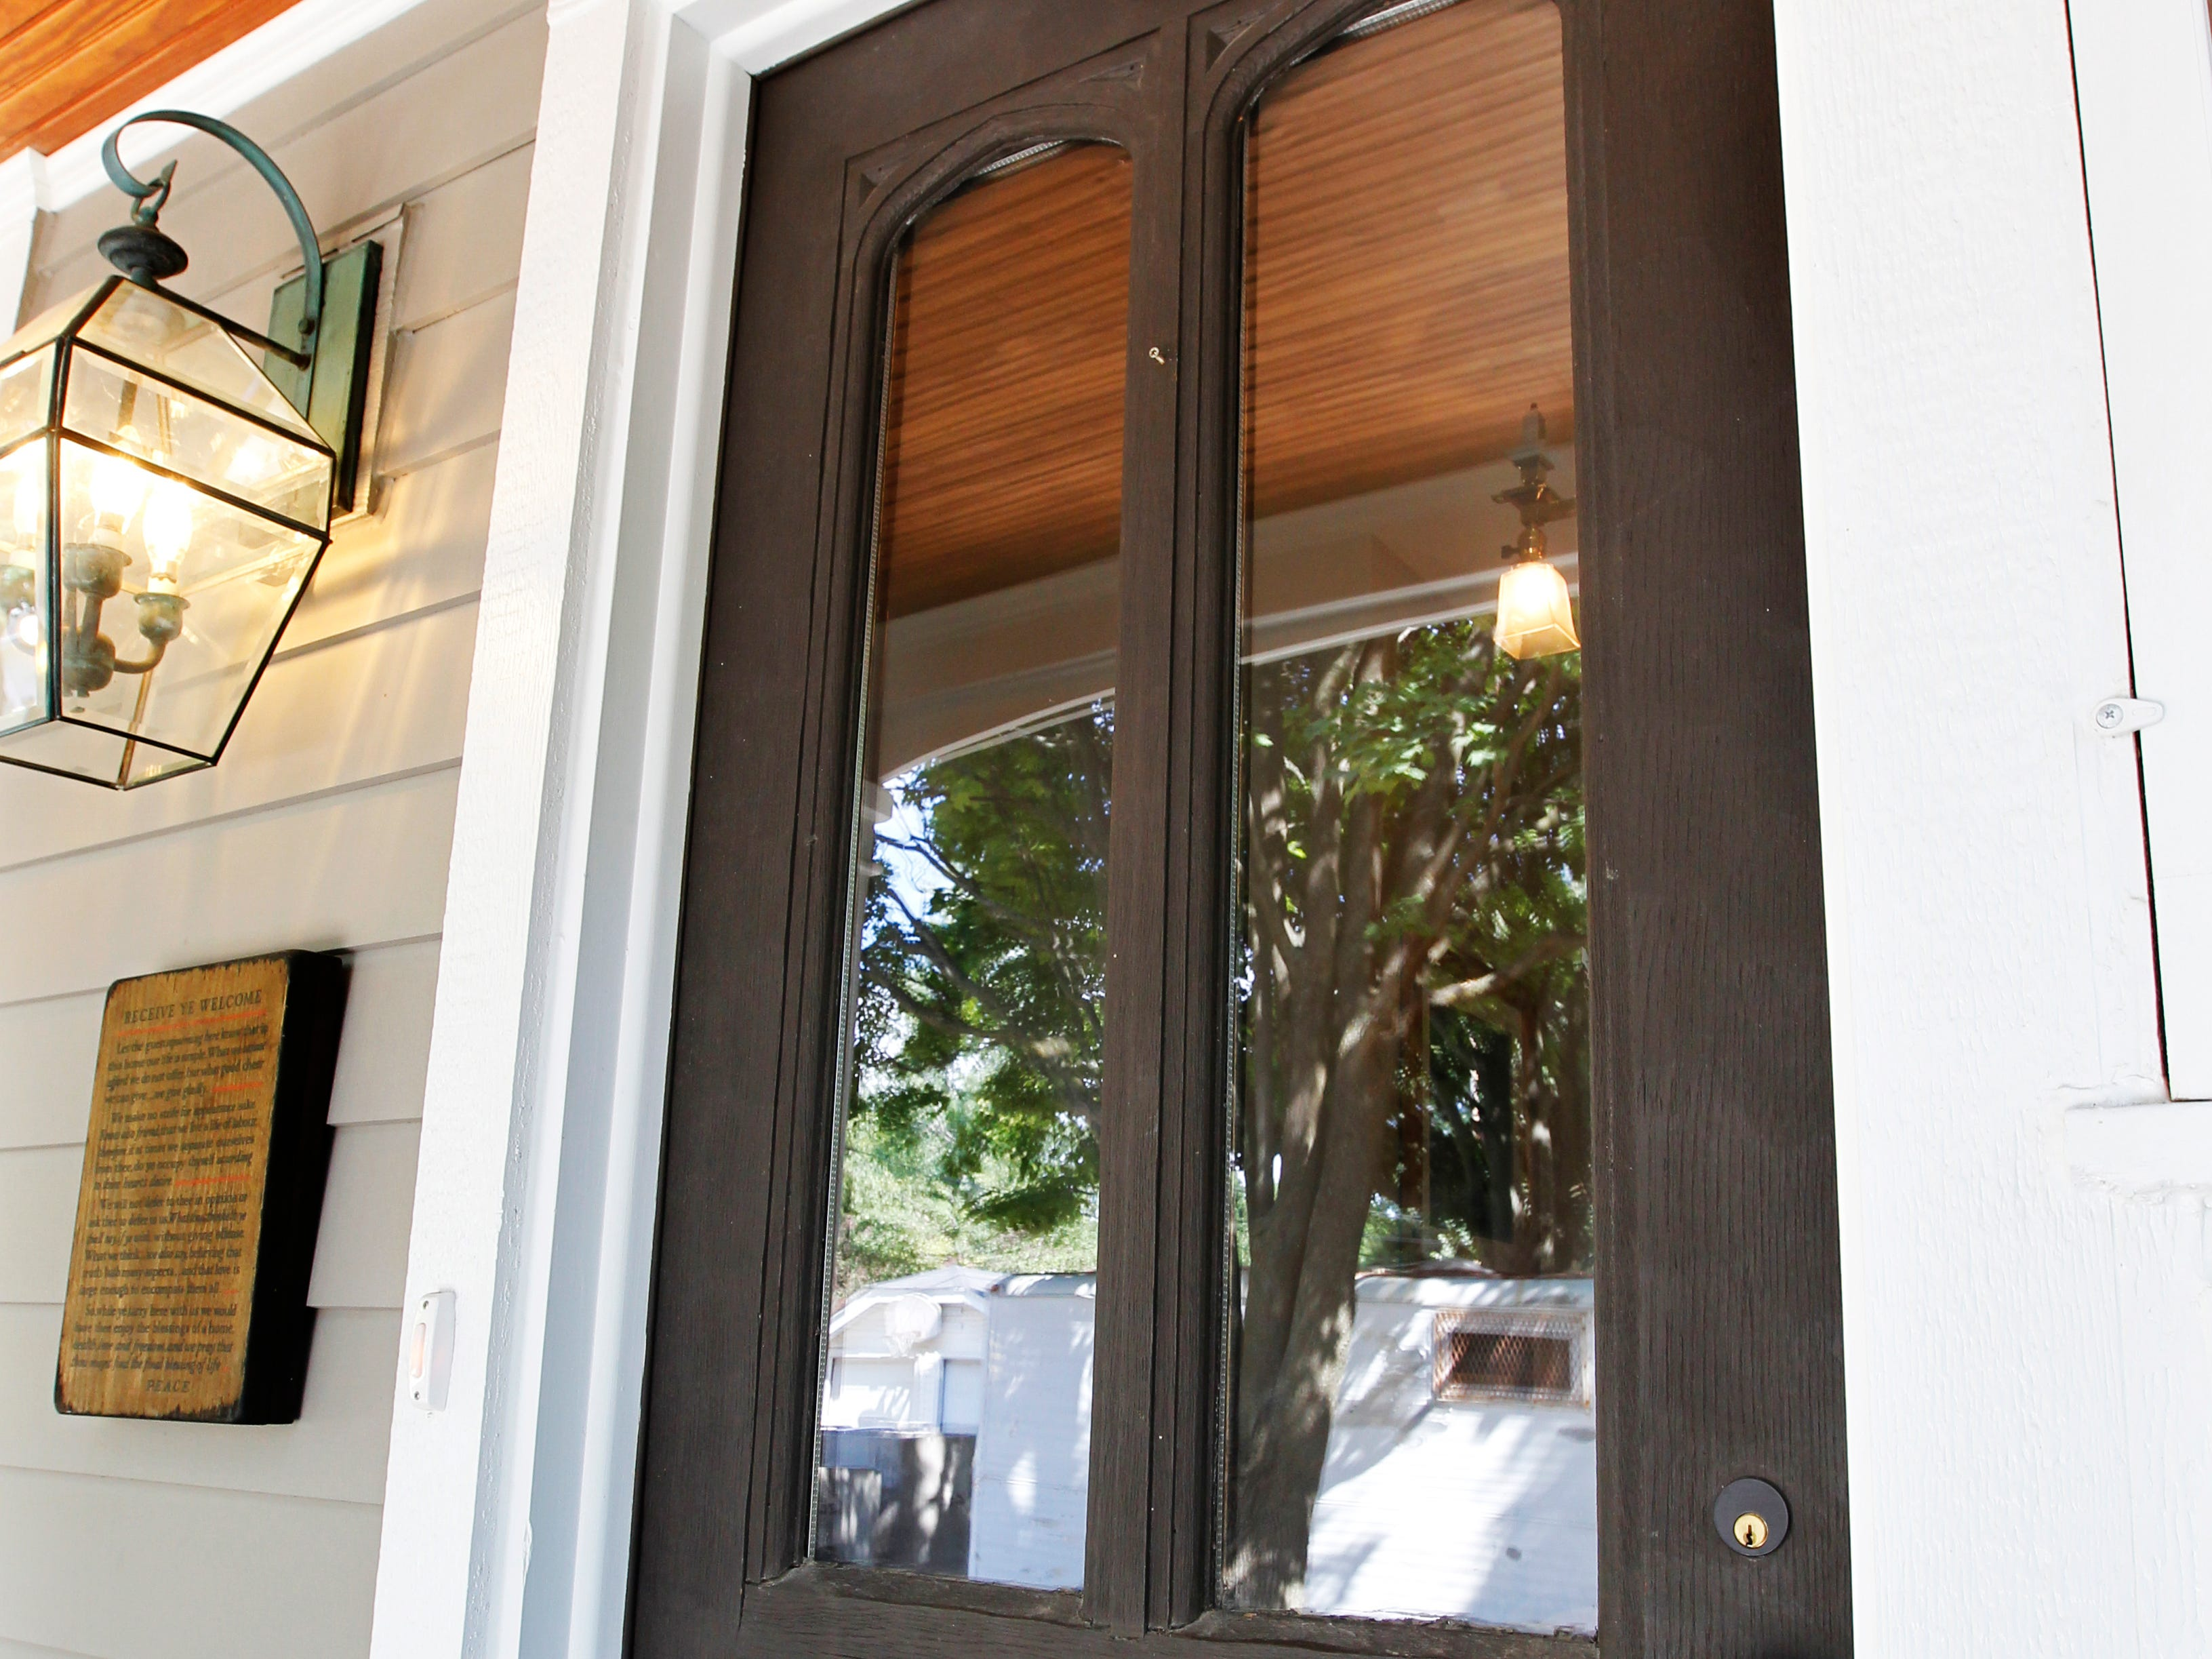 An antique wood door, salvaged from a home in Oshkosh, replaced the old front door of the house.